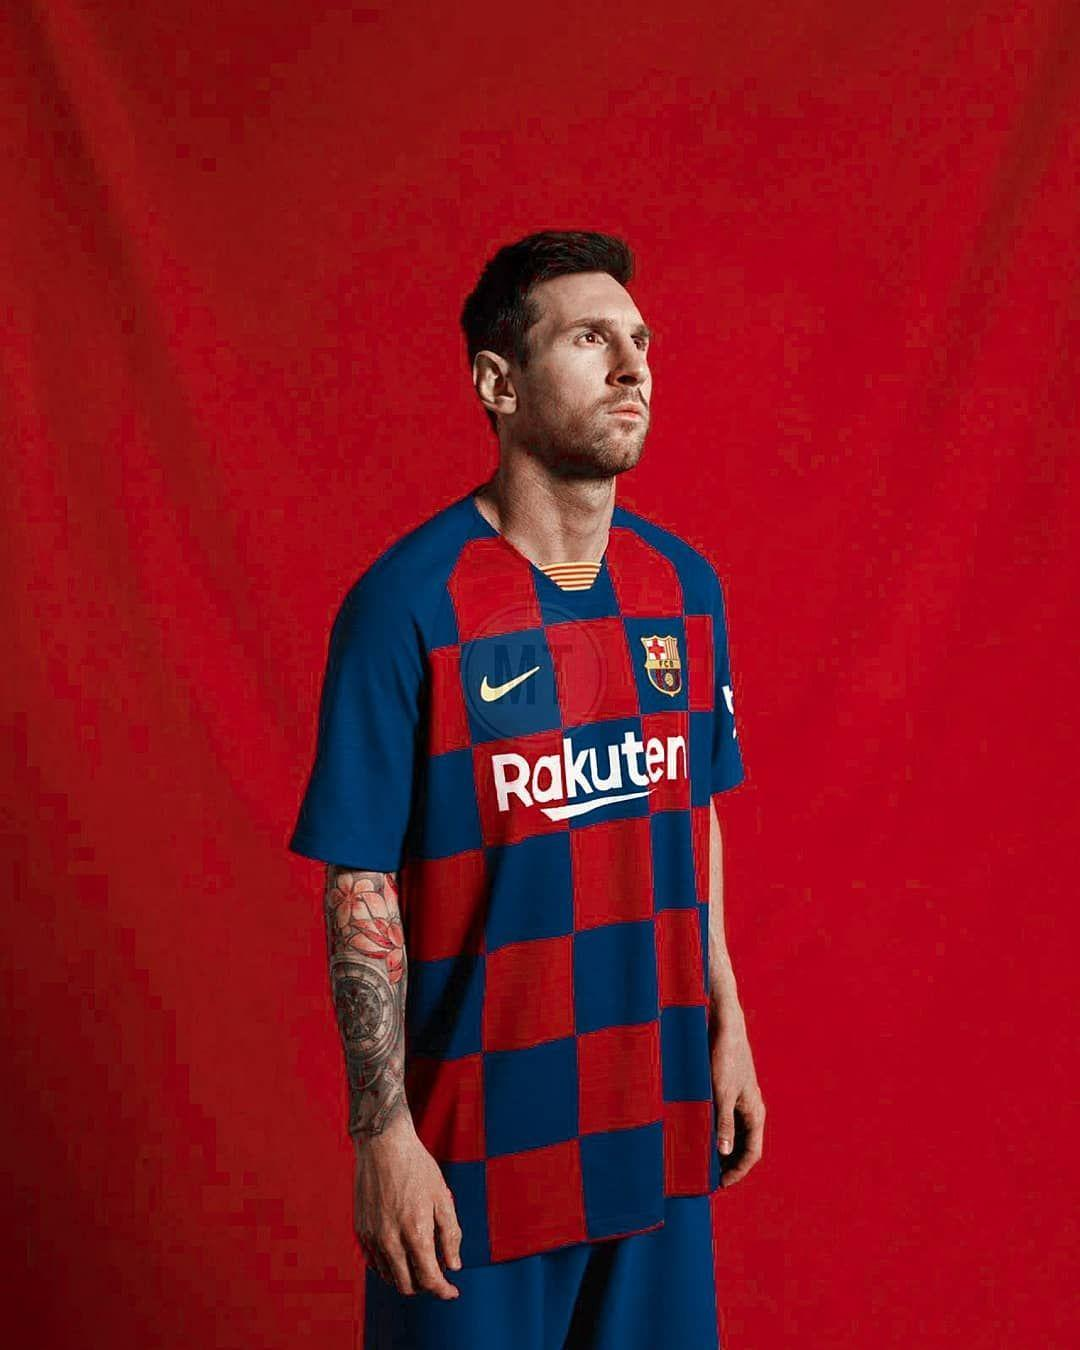 Lionel Messi 2020 Wallpapers - Wallpaper Cave